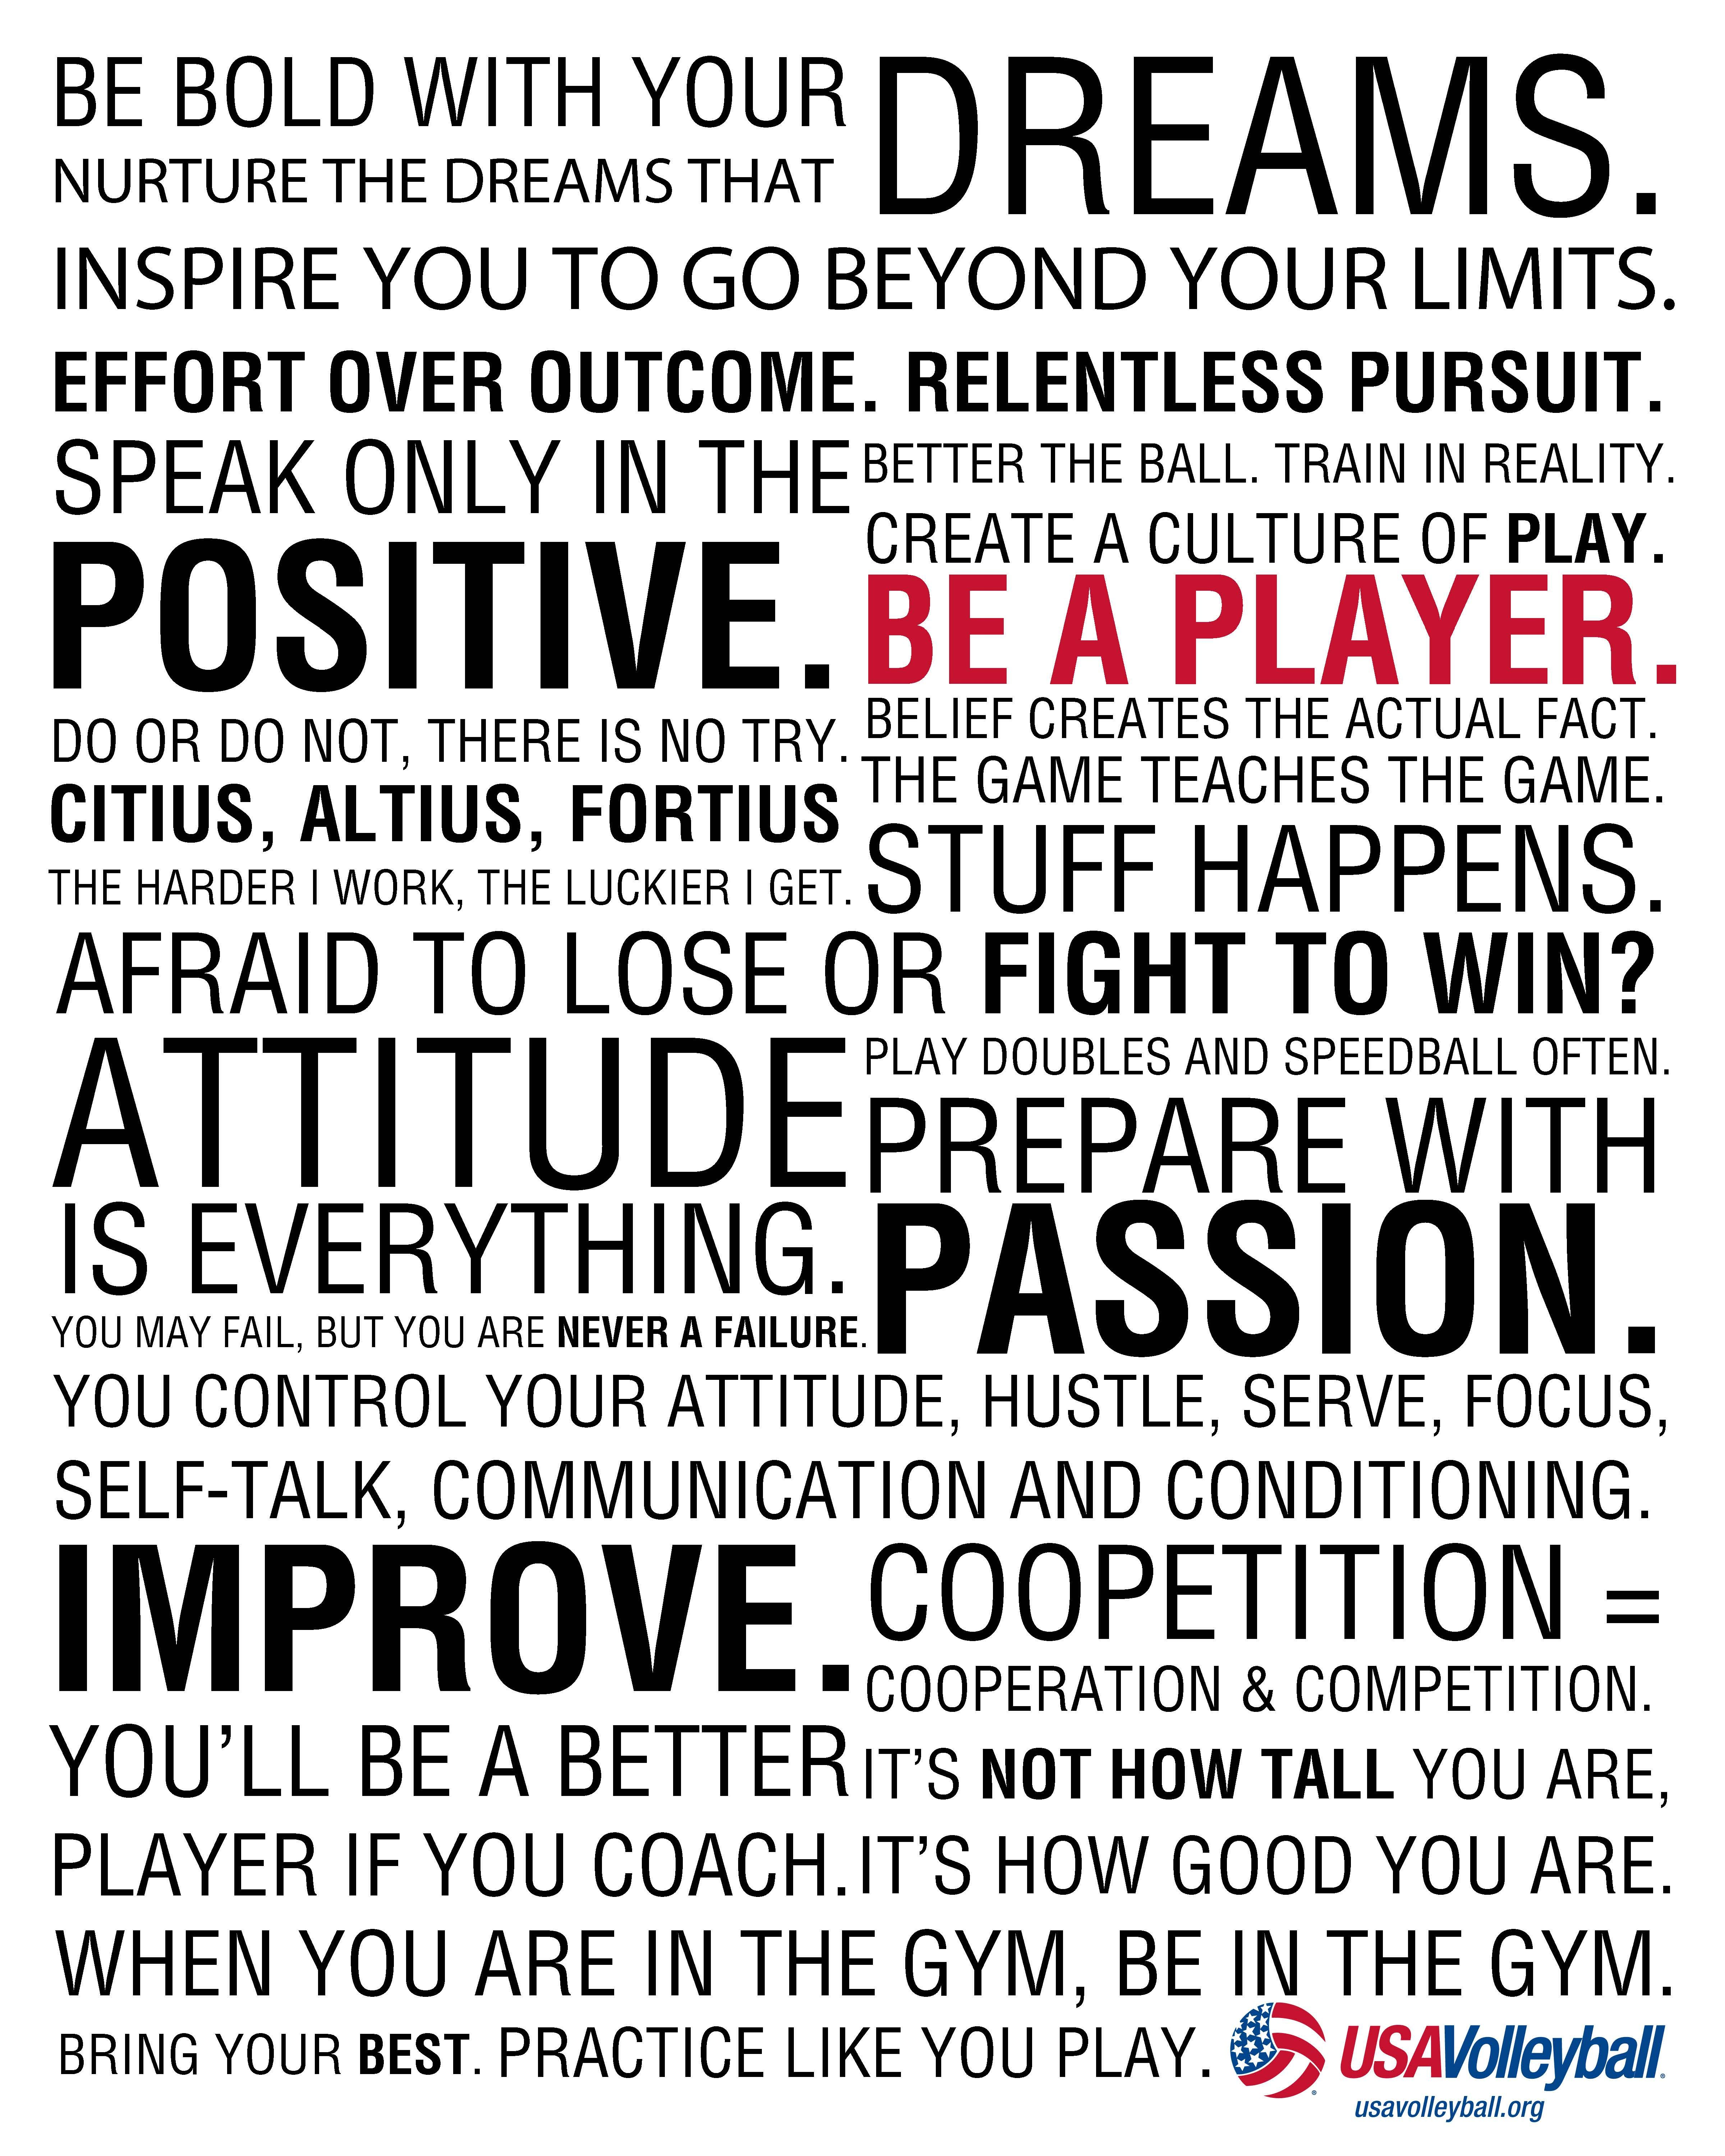 Be bold with your dreams    the usa volleyball player manifesto